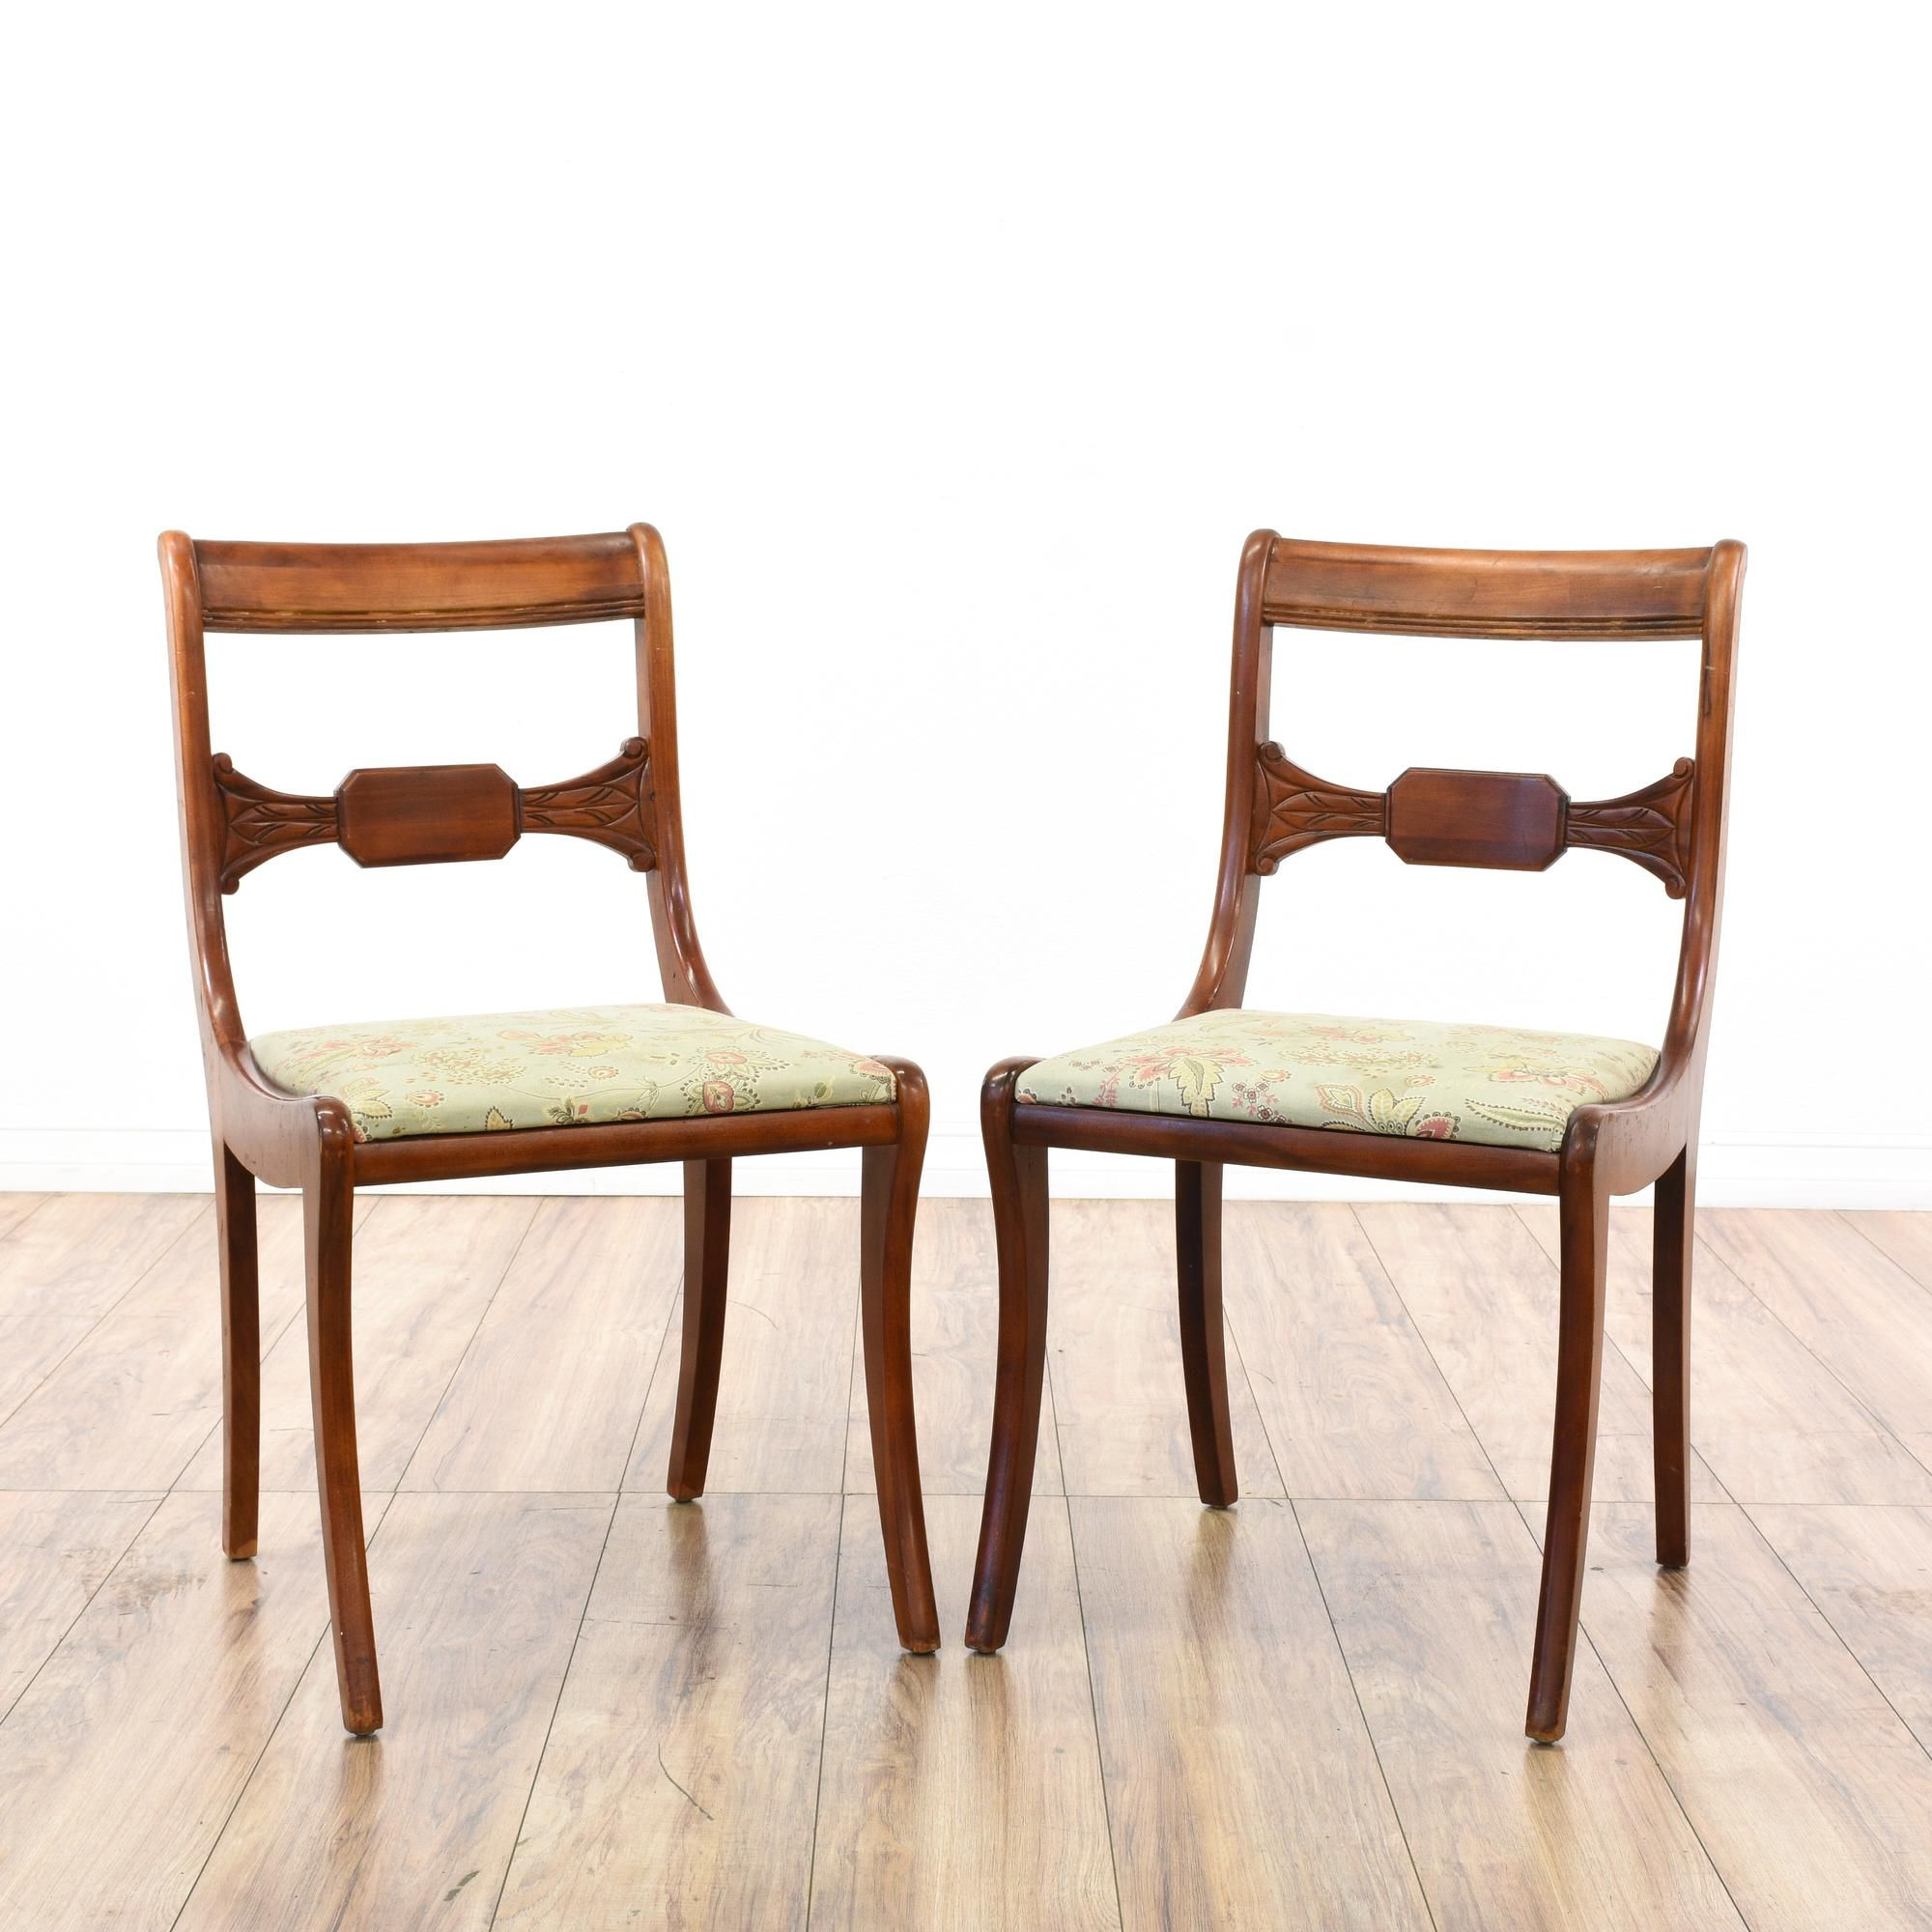 This pair of dining chairs is featured in a solid wood with a